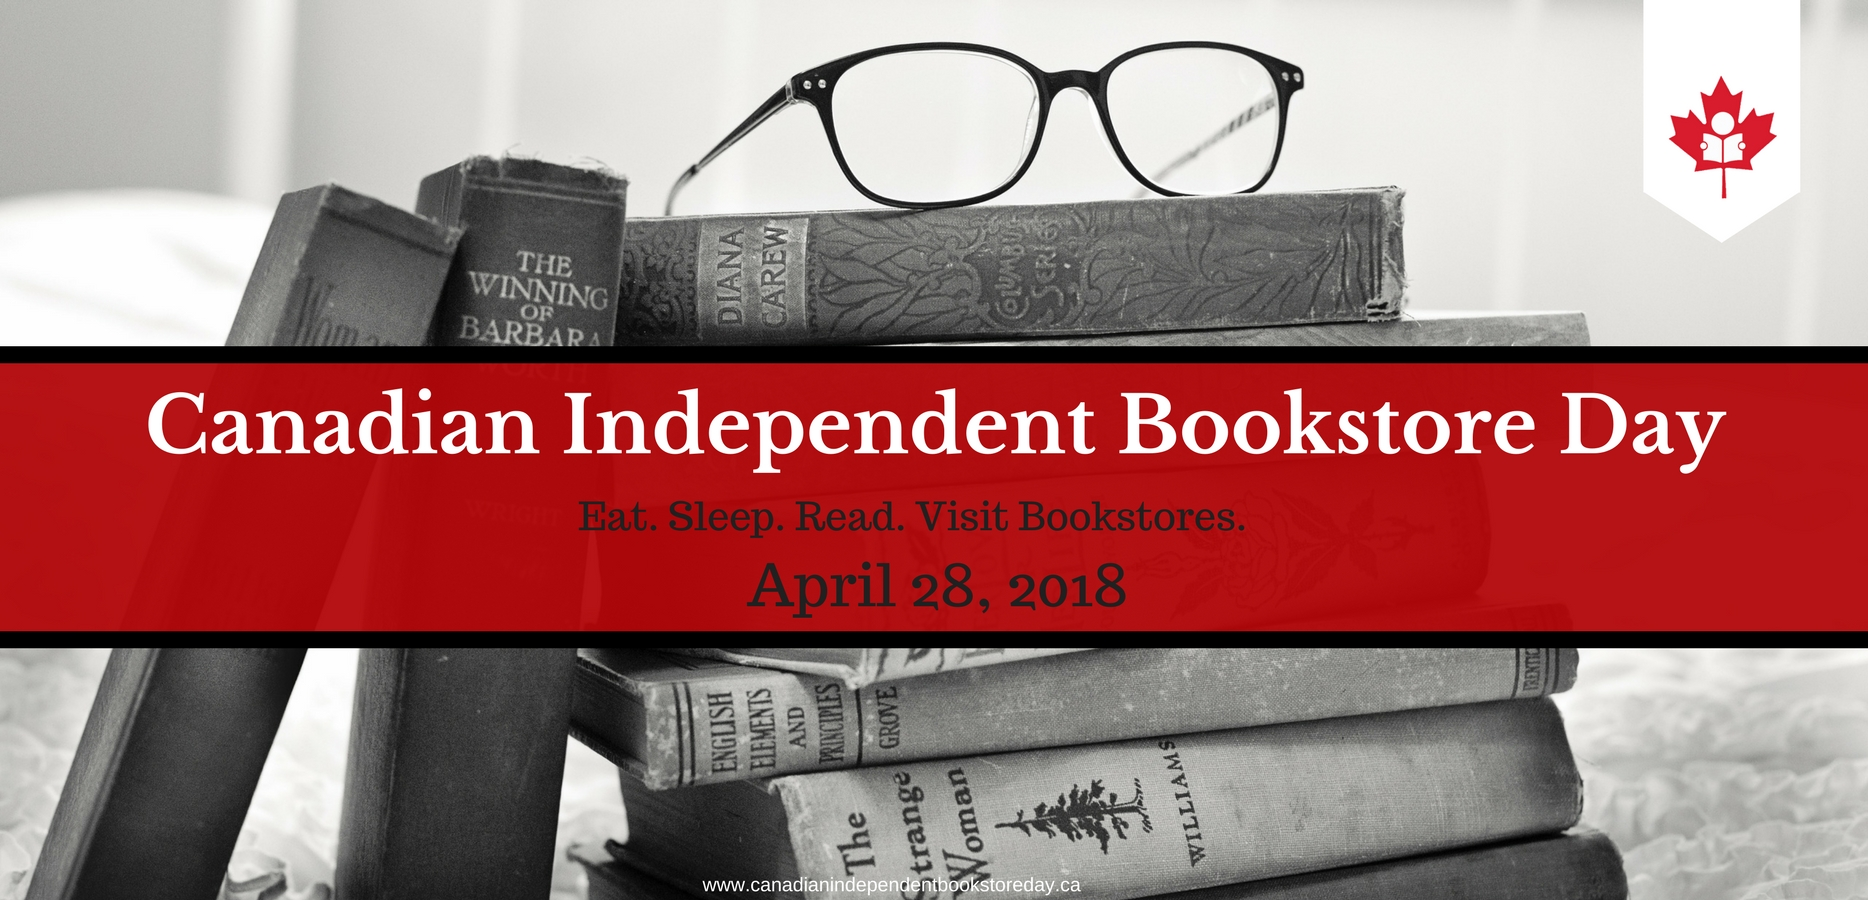 Canadian Independent Bookstore Day